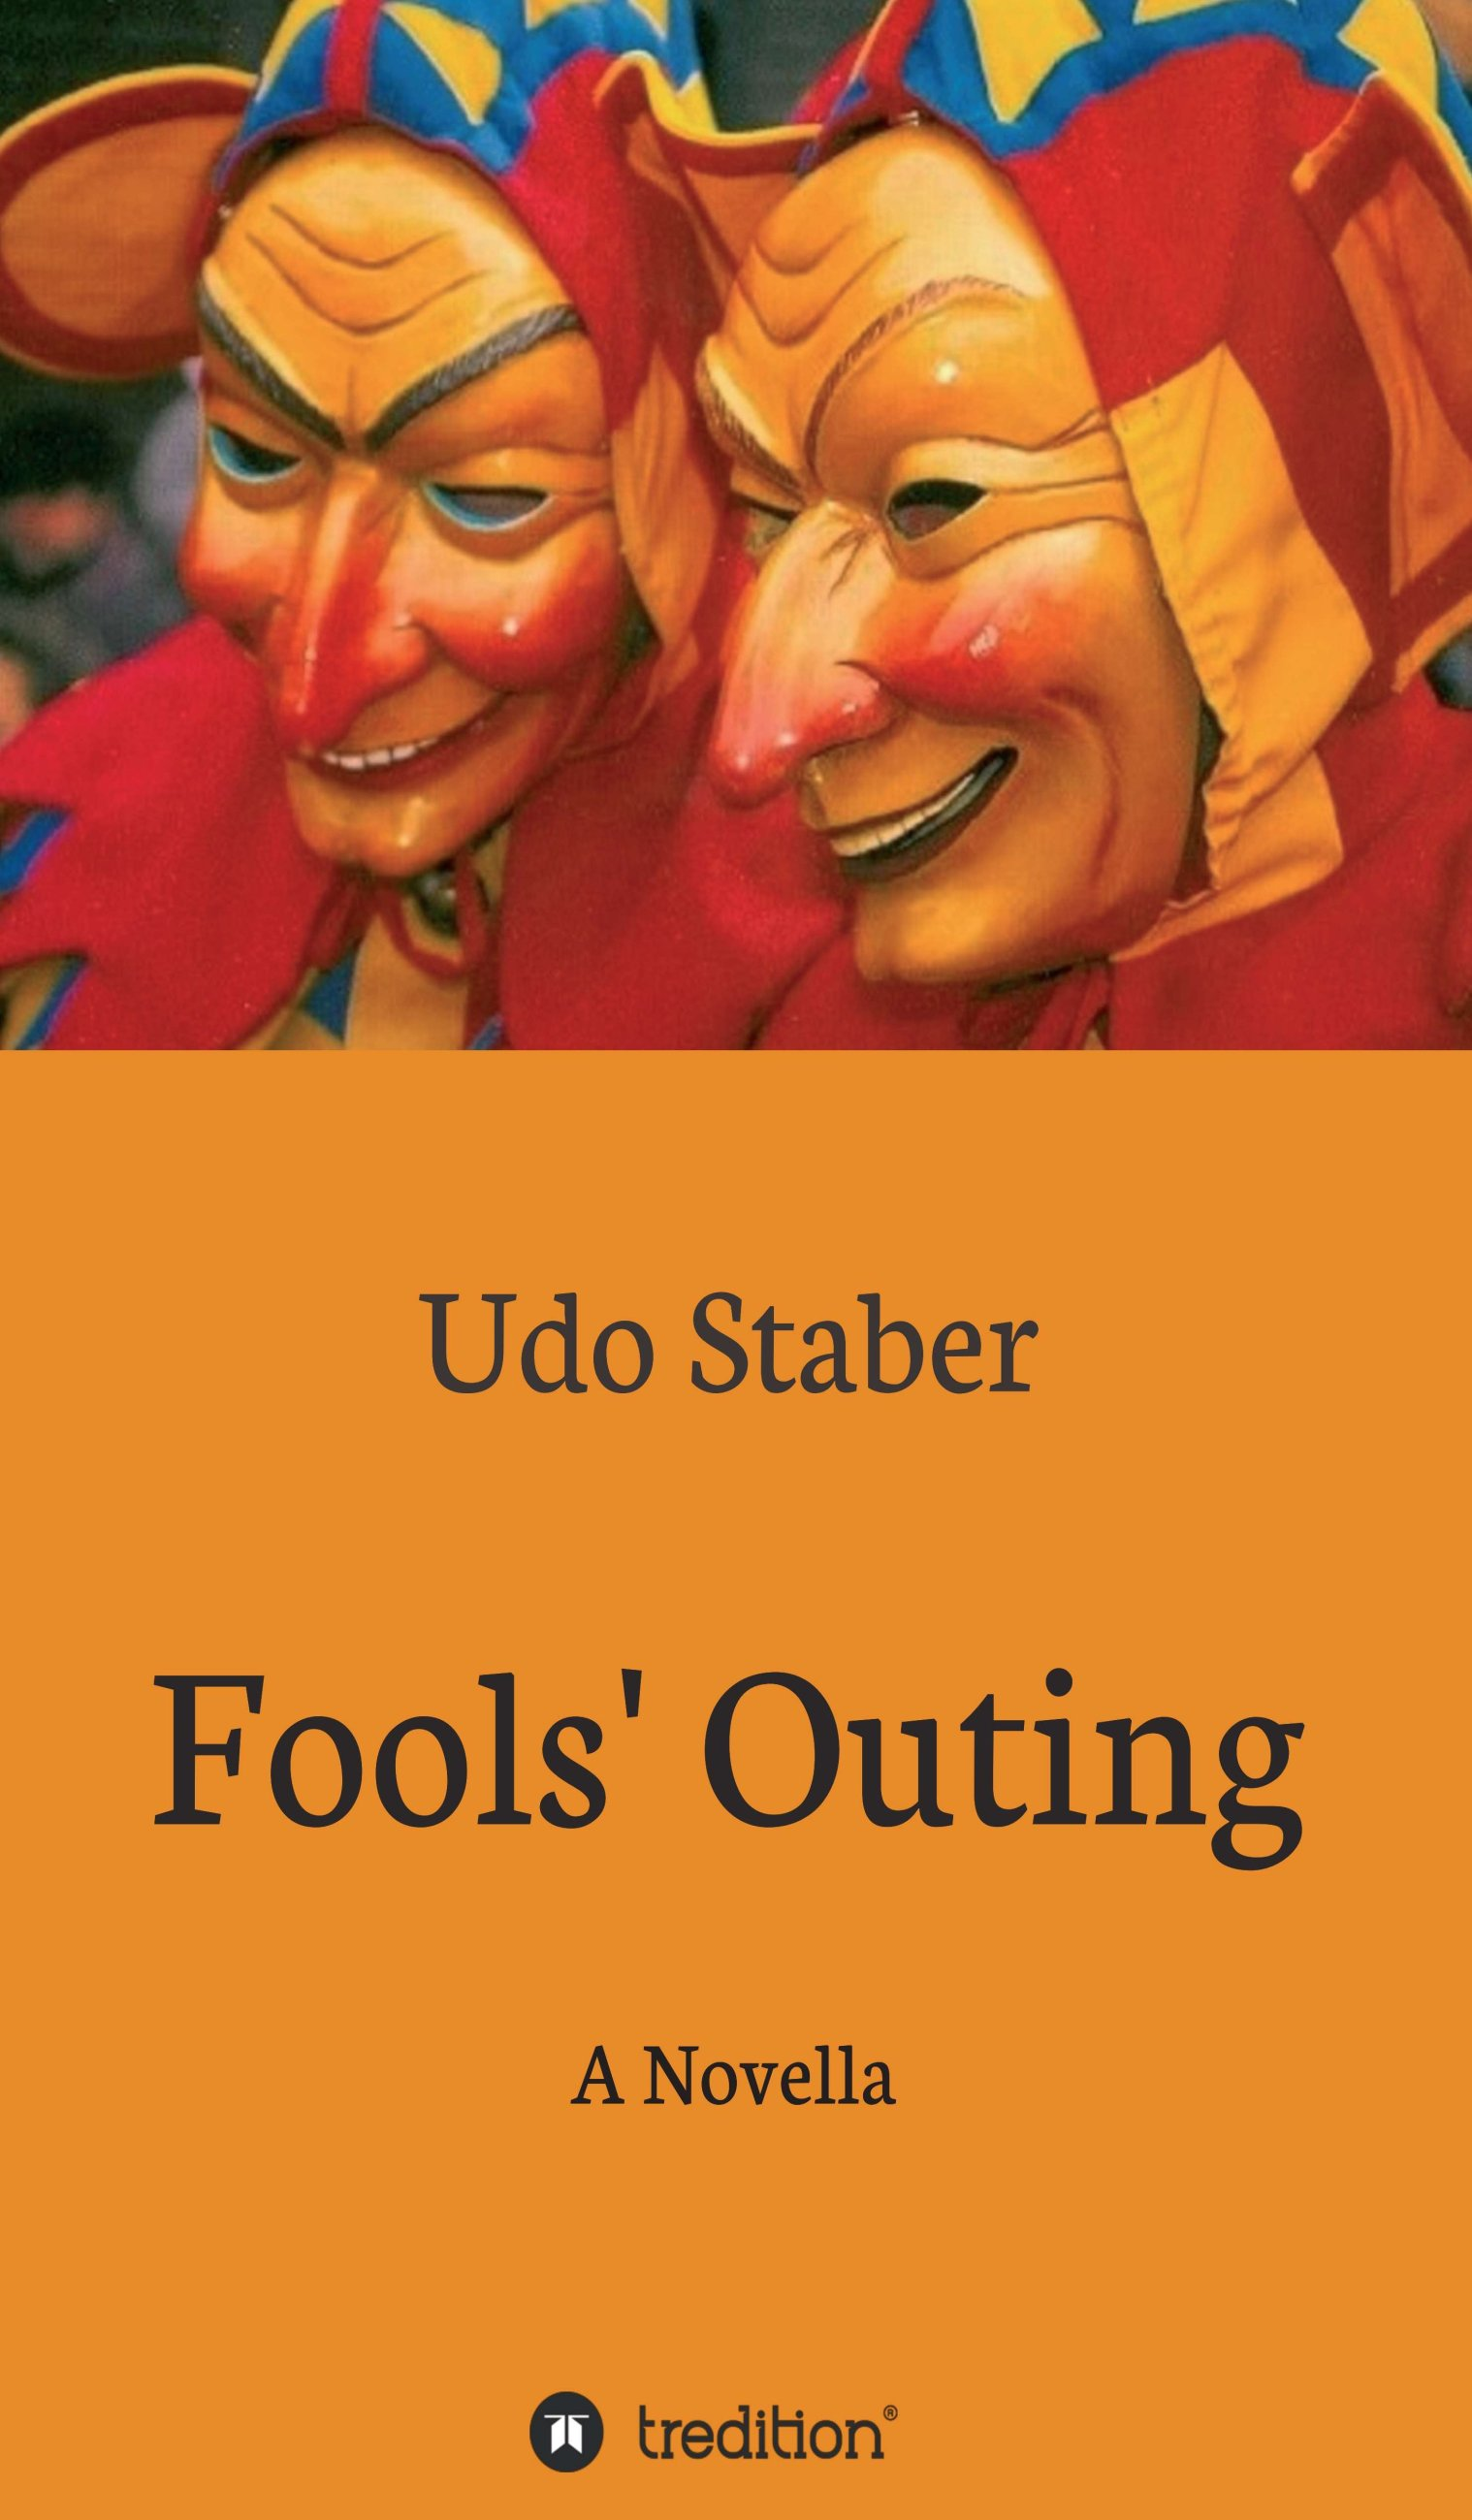 Fool's Outing - Exciting novella about a toxic split-up